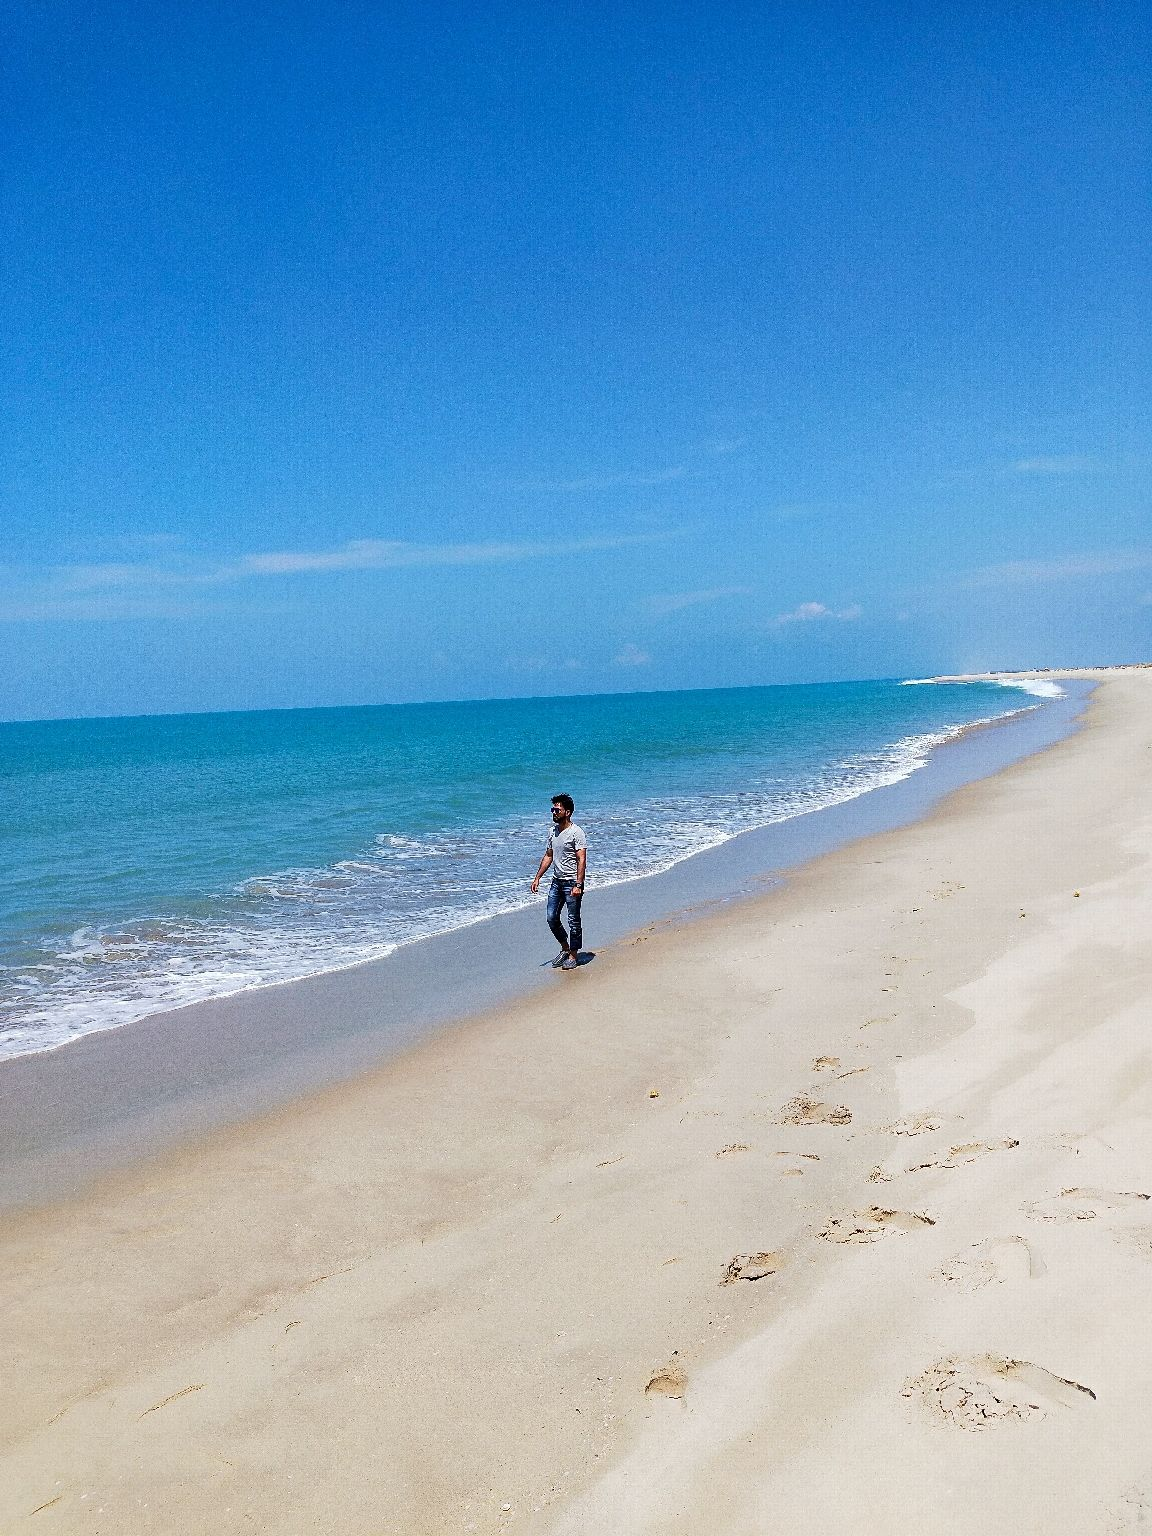 Photo of Dhanushkodi By Dil Nawaz @indiantraveler_